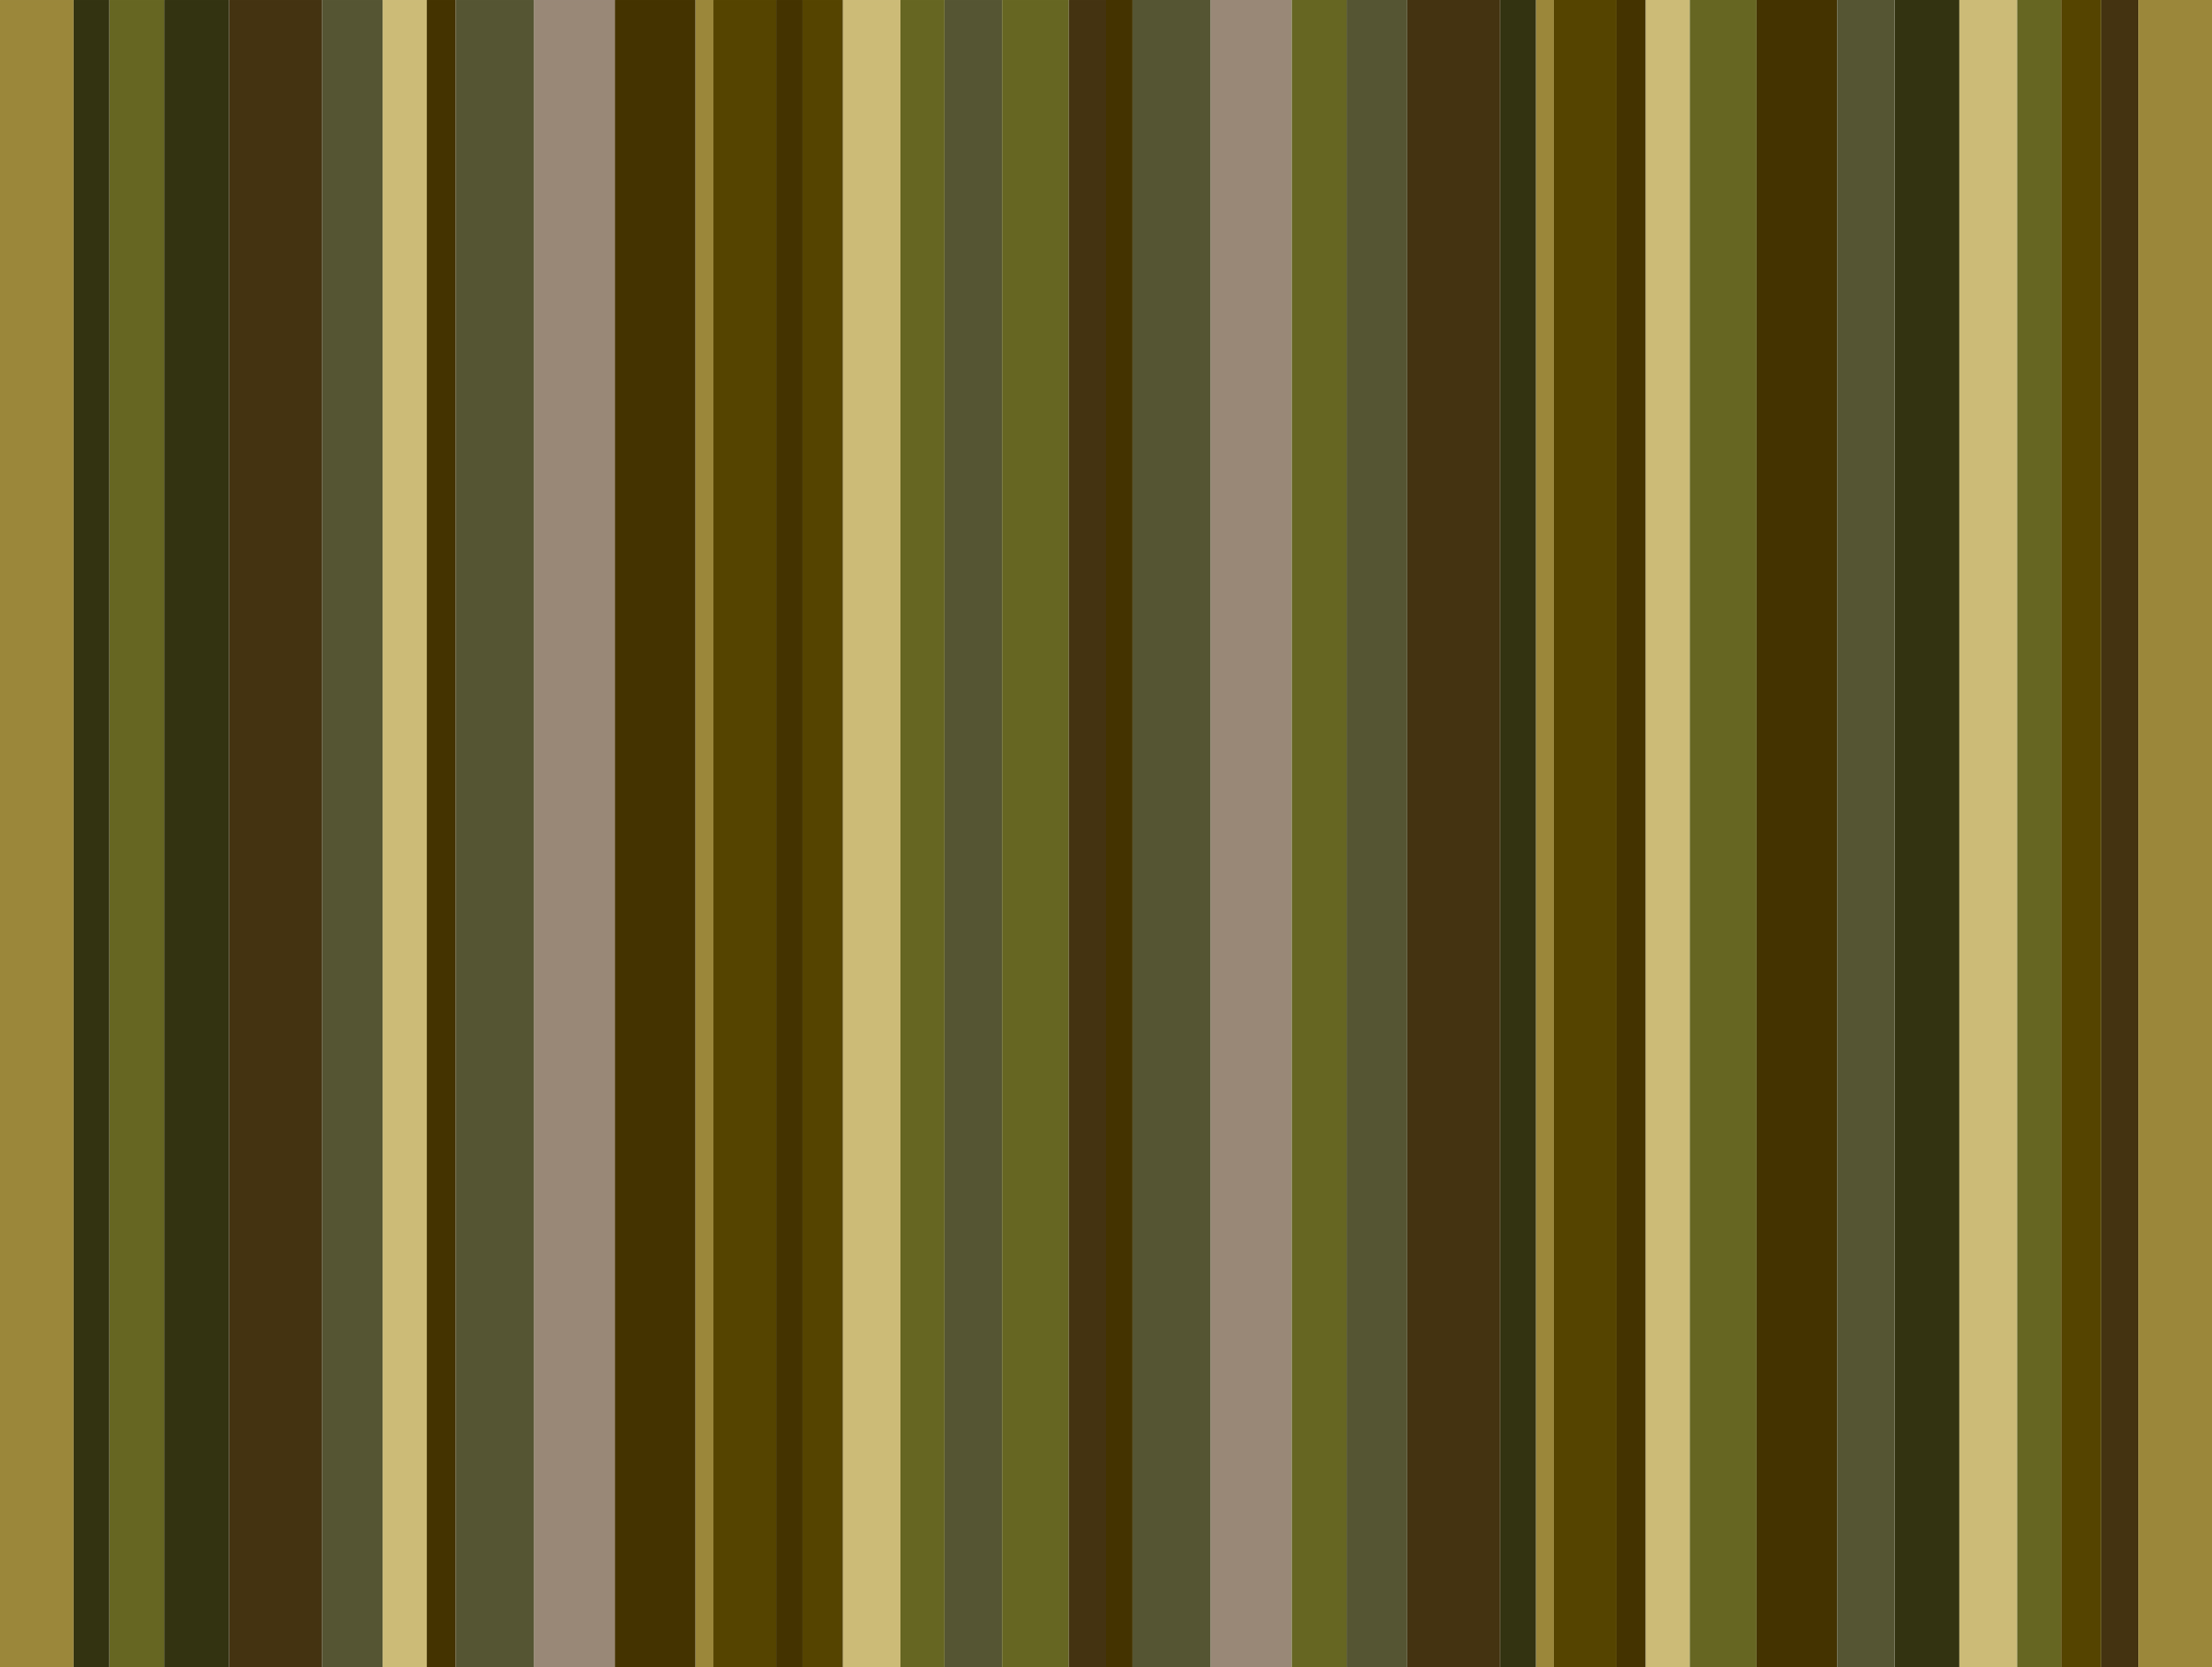 Stripe background by dear_theophilus